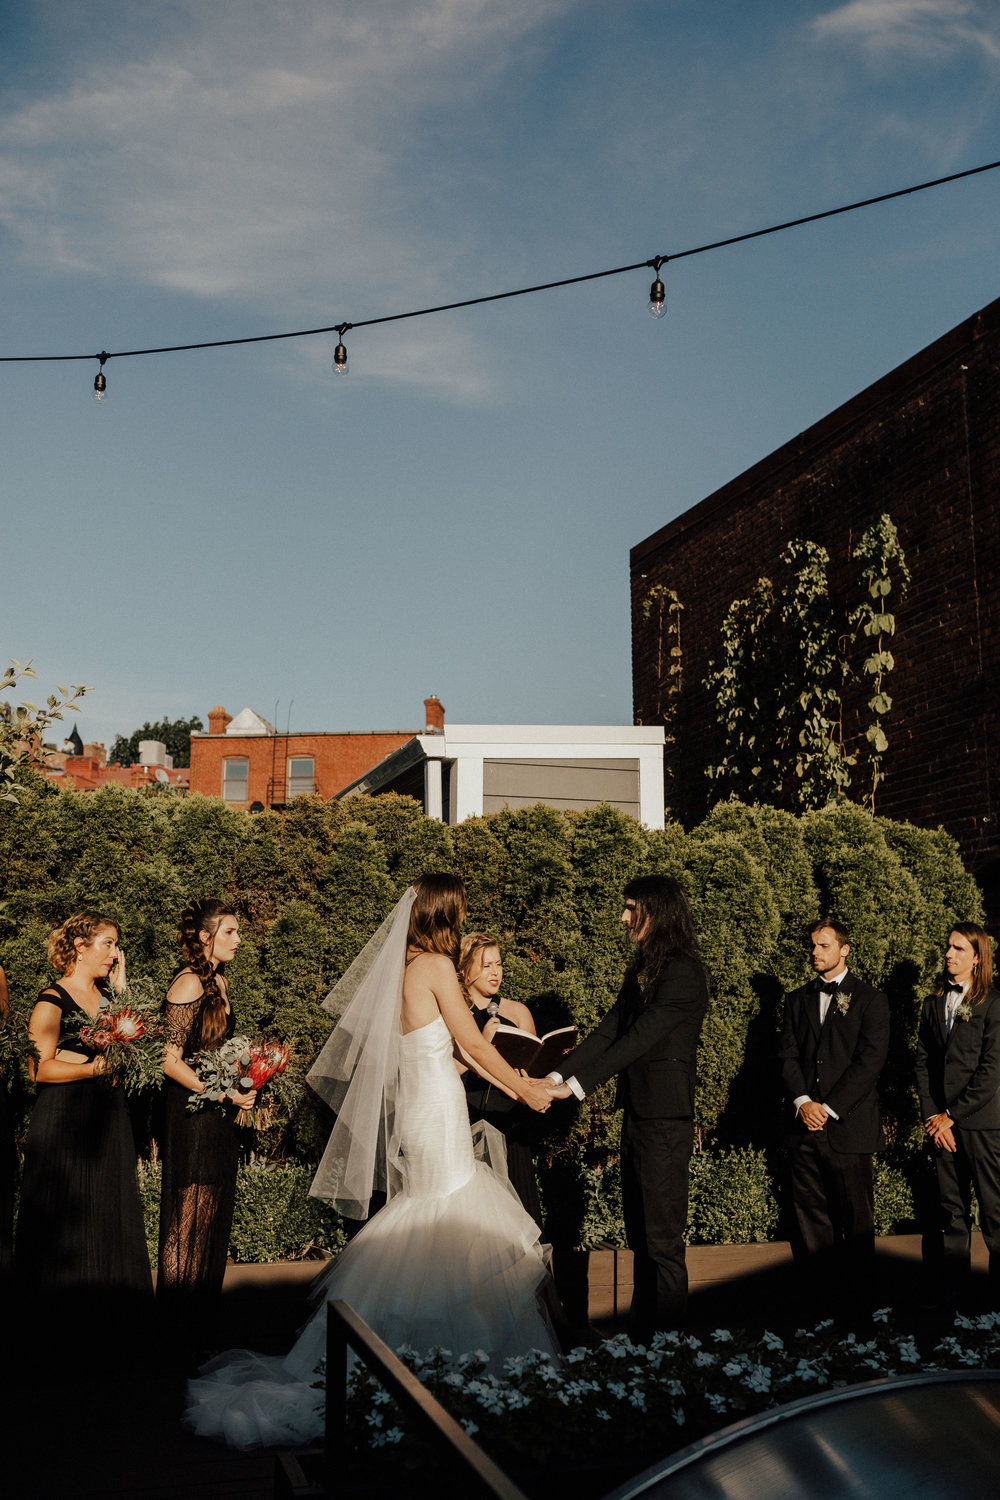 Fathom Gallery  - The most gorgeous rooftop to get married on in the D.C area! Perfect for smaller sized weddings!